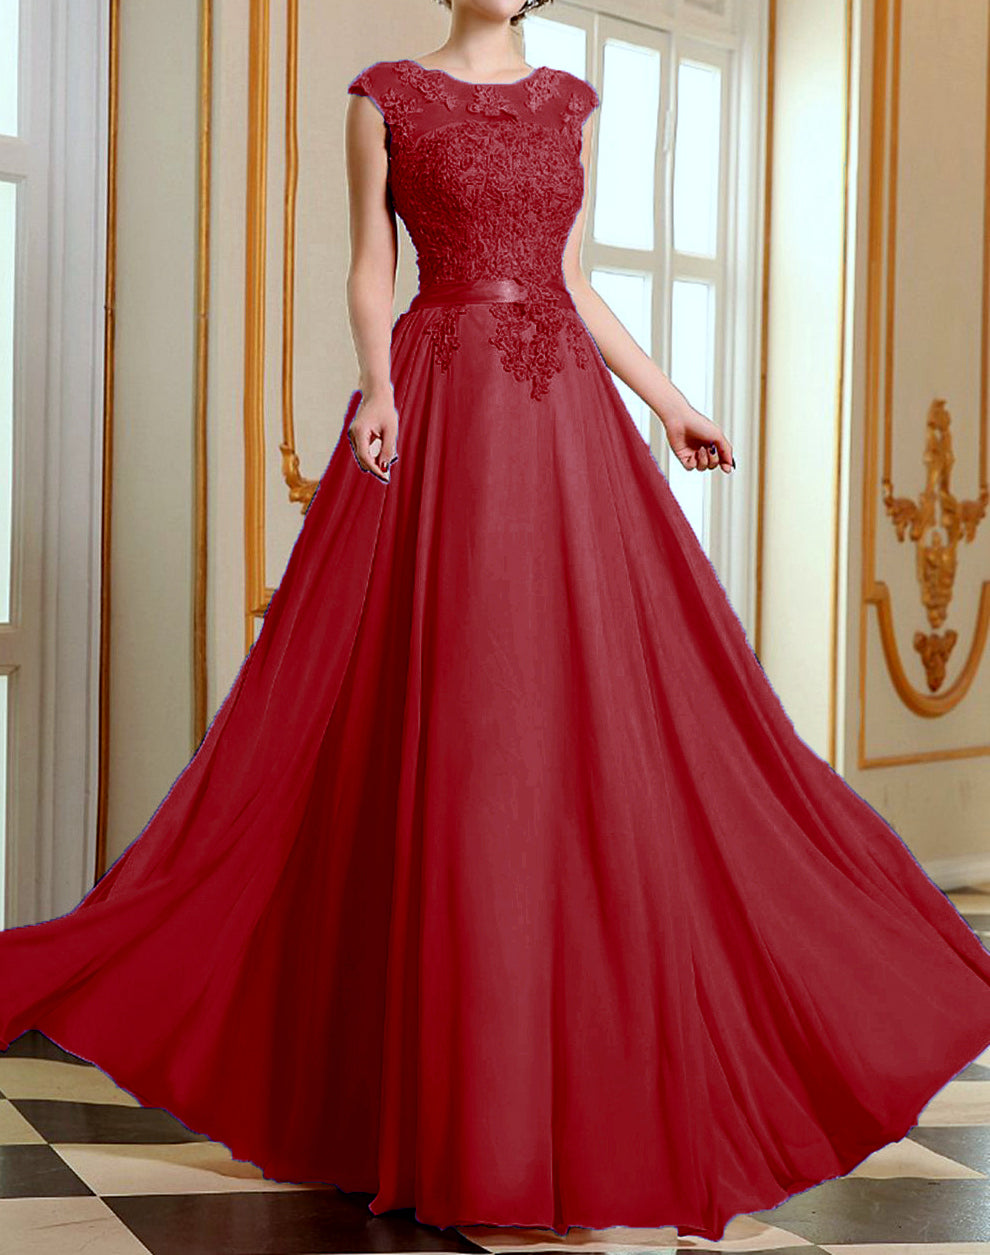 Ruby Berry Burgundy Red Wine Lace Chiffon Long Bridesmaid Wedding Bridal Prom Evening Ballgown dress uk